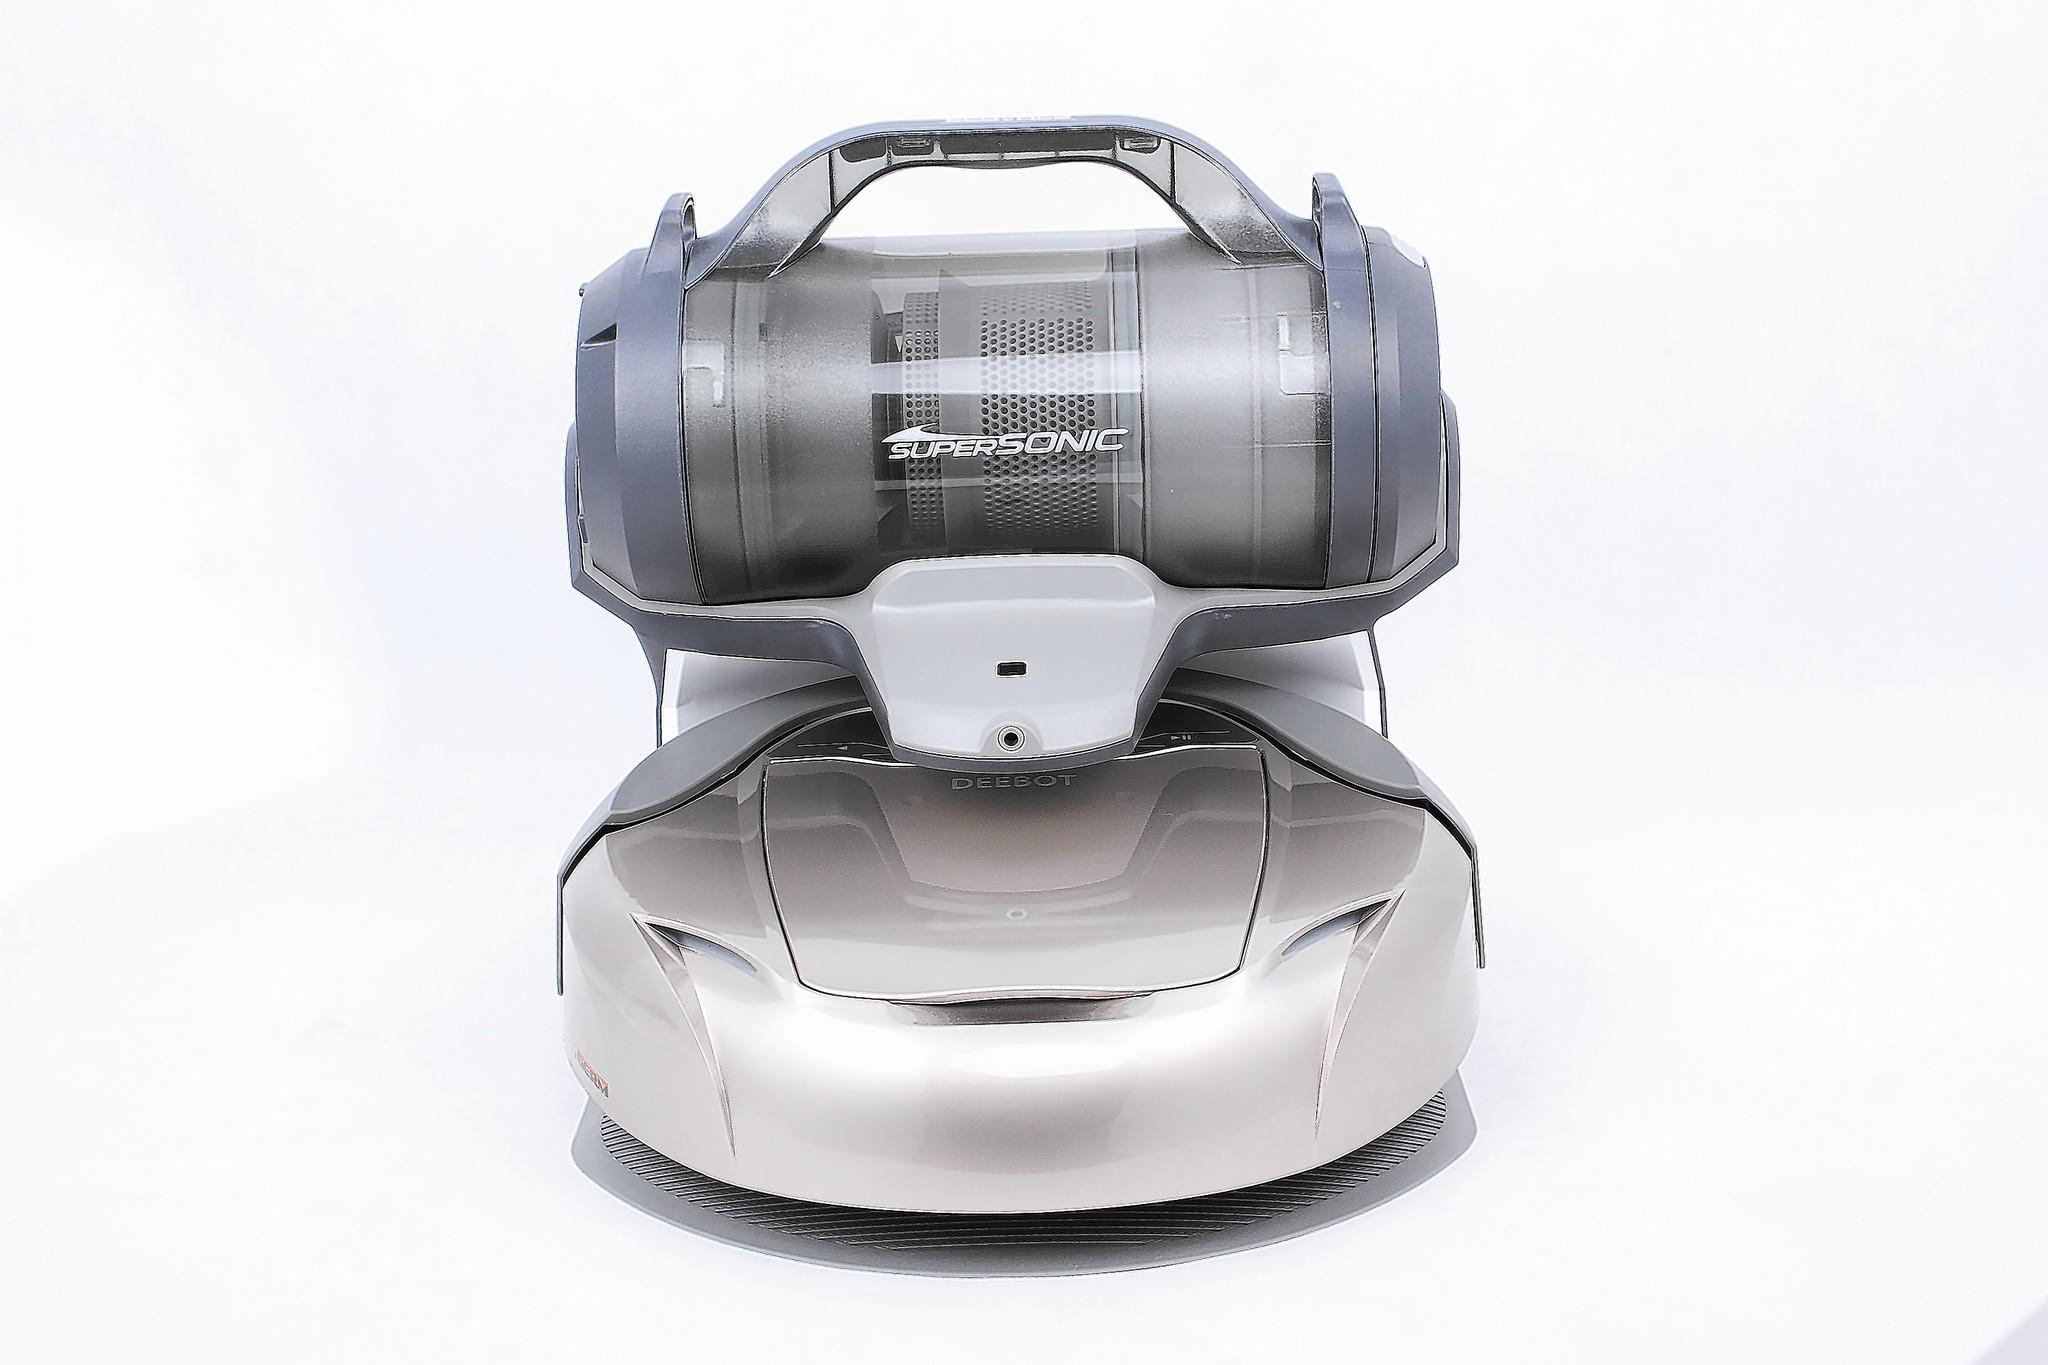 The Deebot robotic vacuum cleaner from Ecovacs.